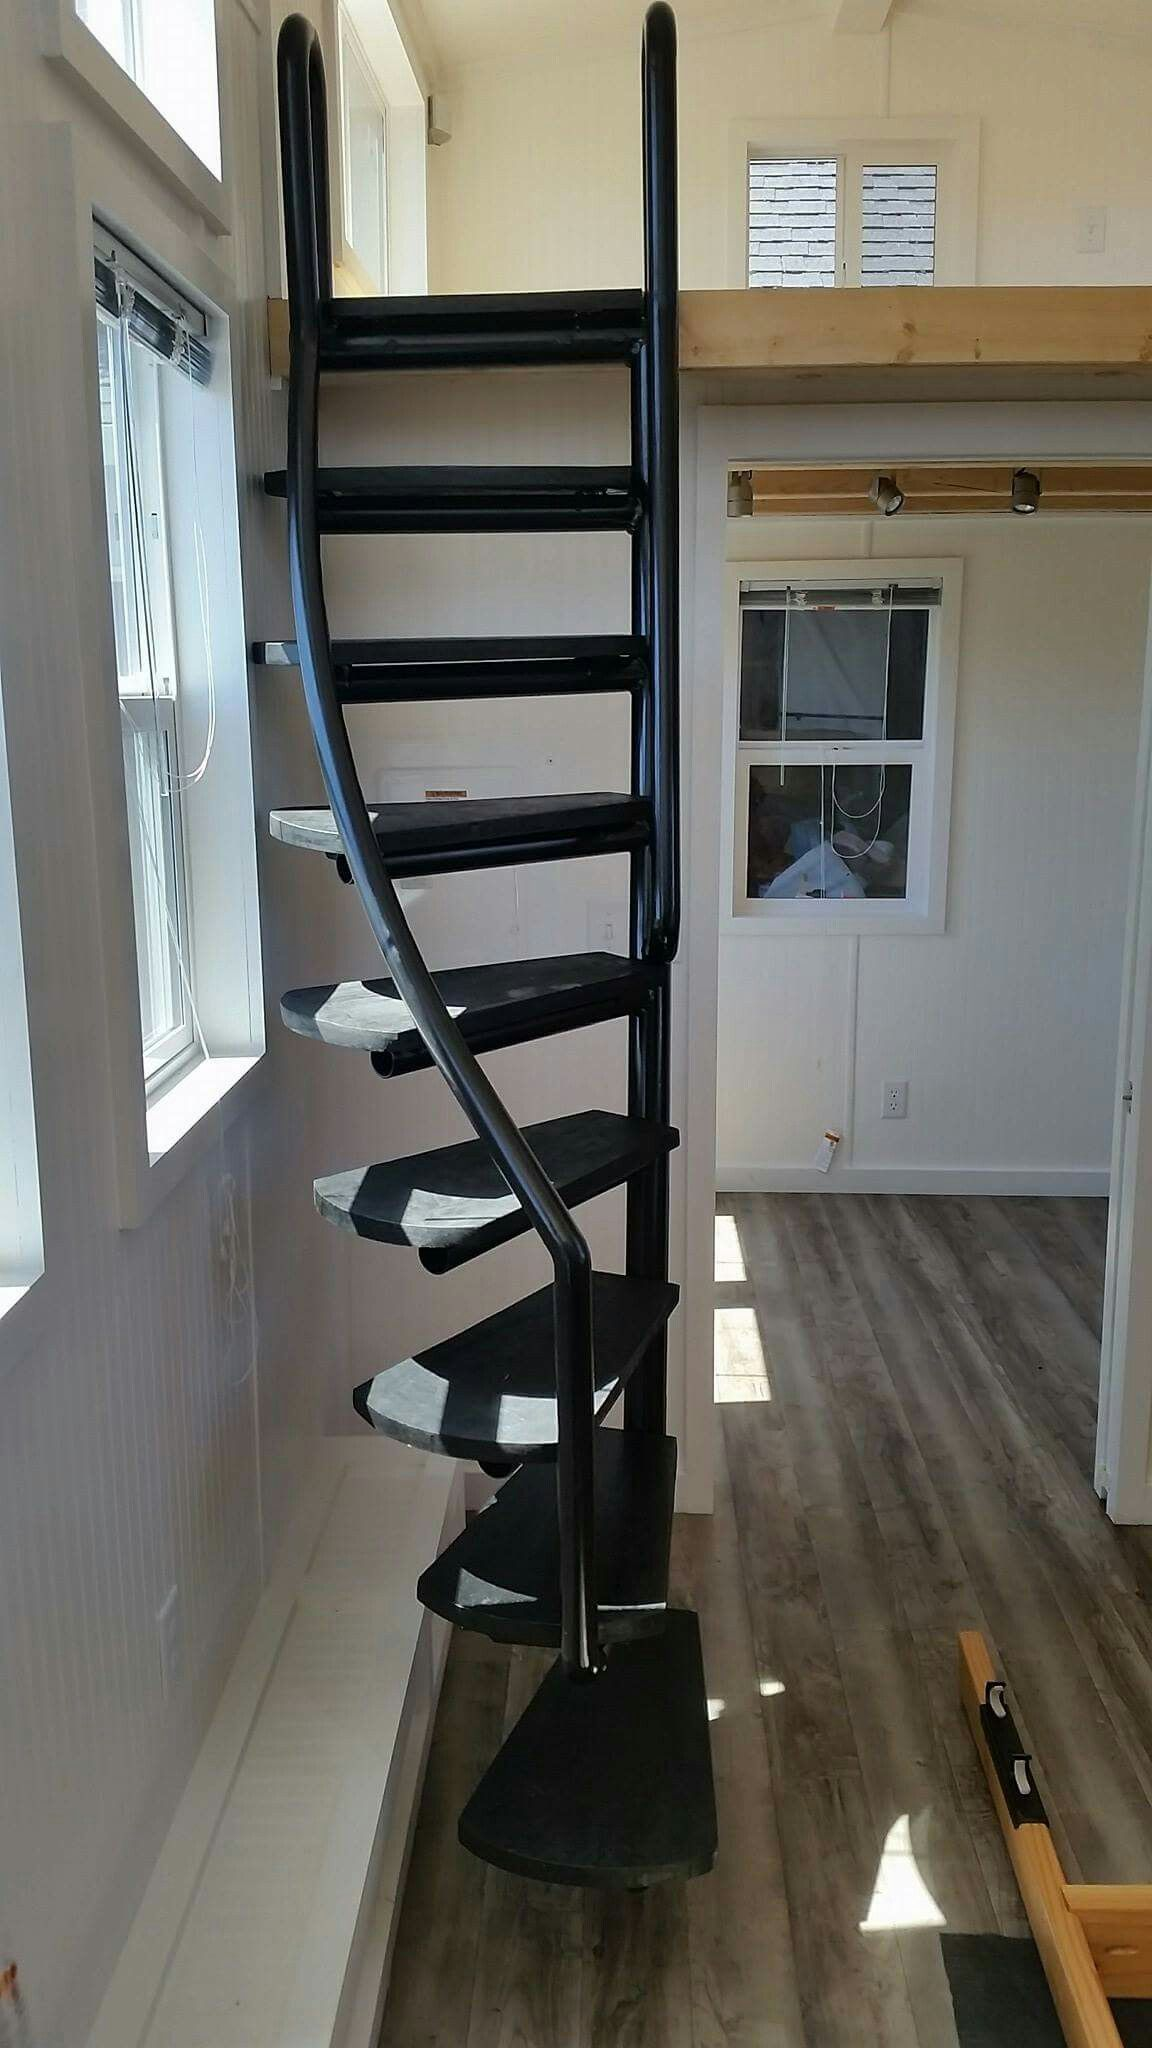 10 Crazy Tips And Tricks Attic Ideas Apartment Attic Storage Floor Simple Attic Remodel Attic Staircase Built Ins Att Attic Ladder Attic Staircase Attic Rooms